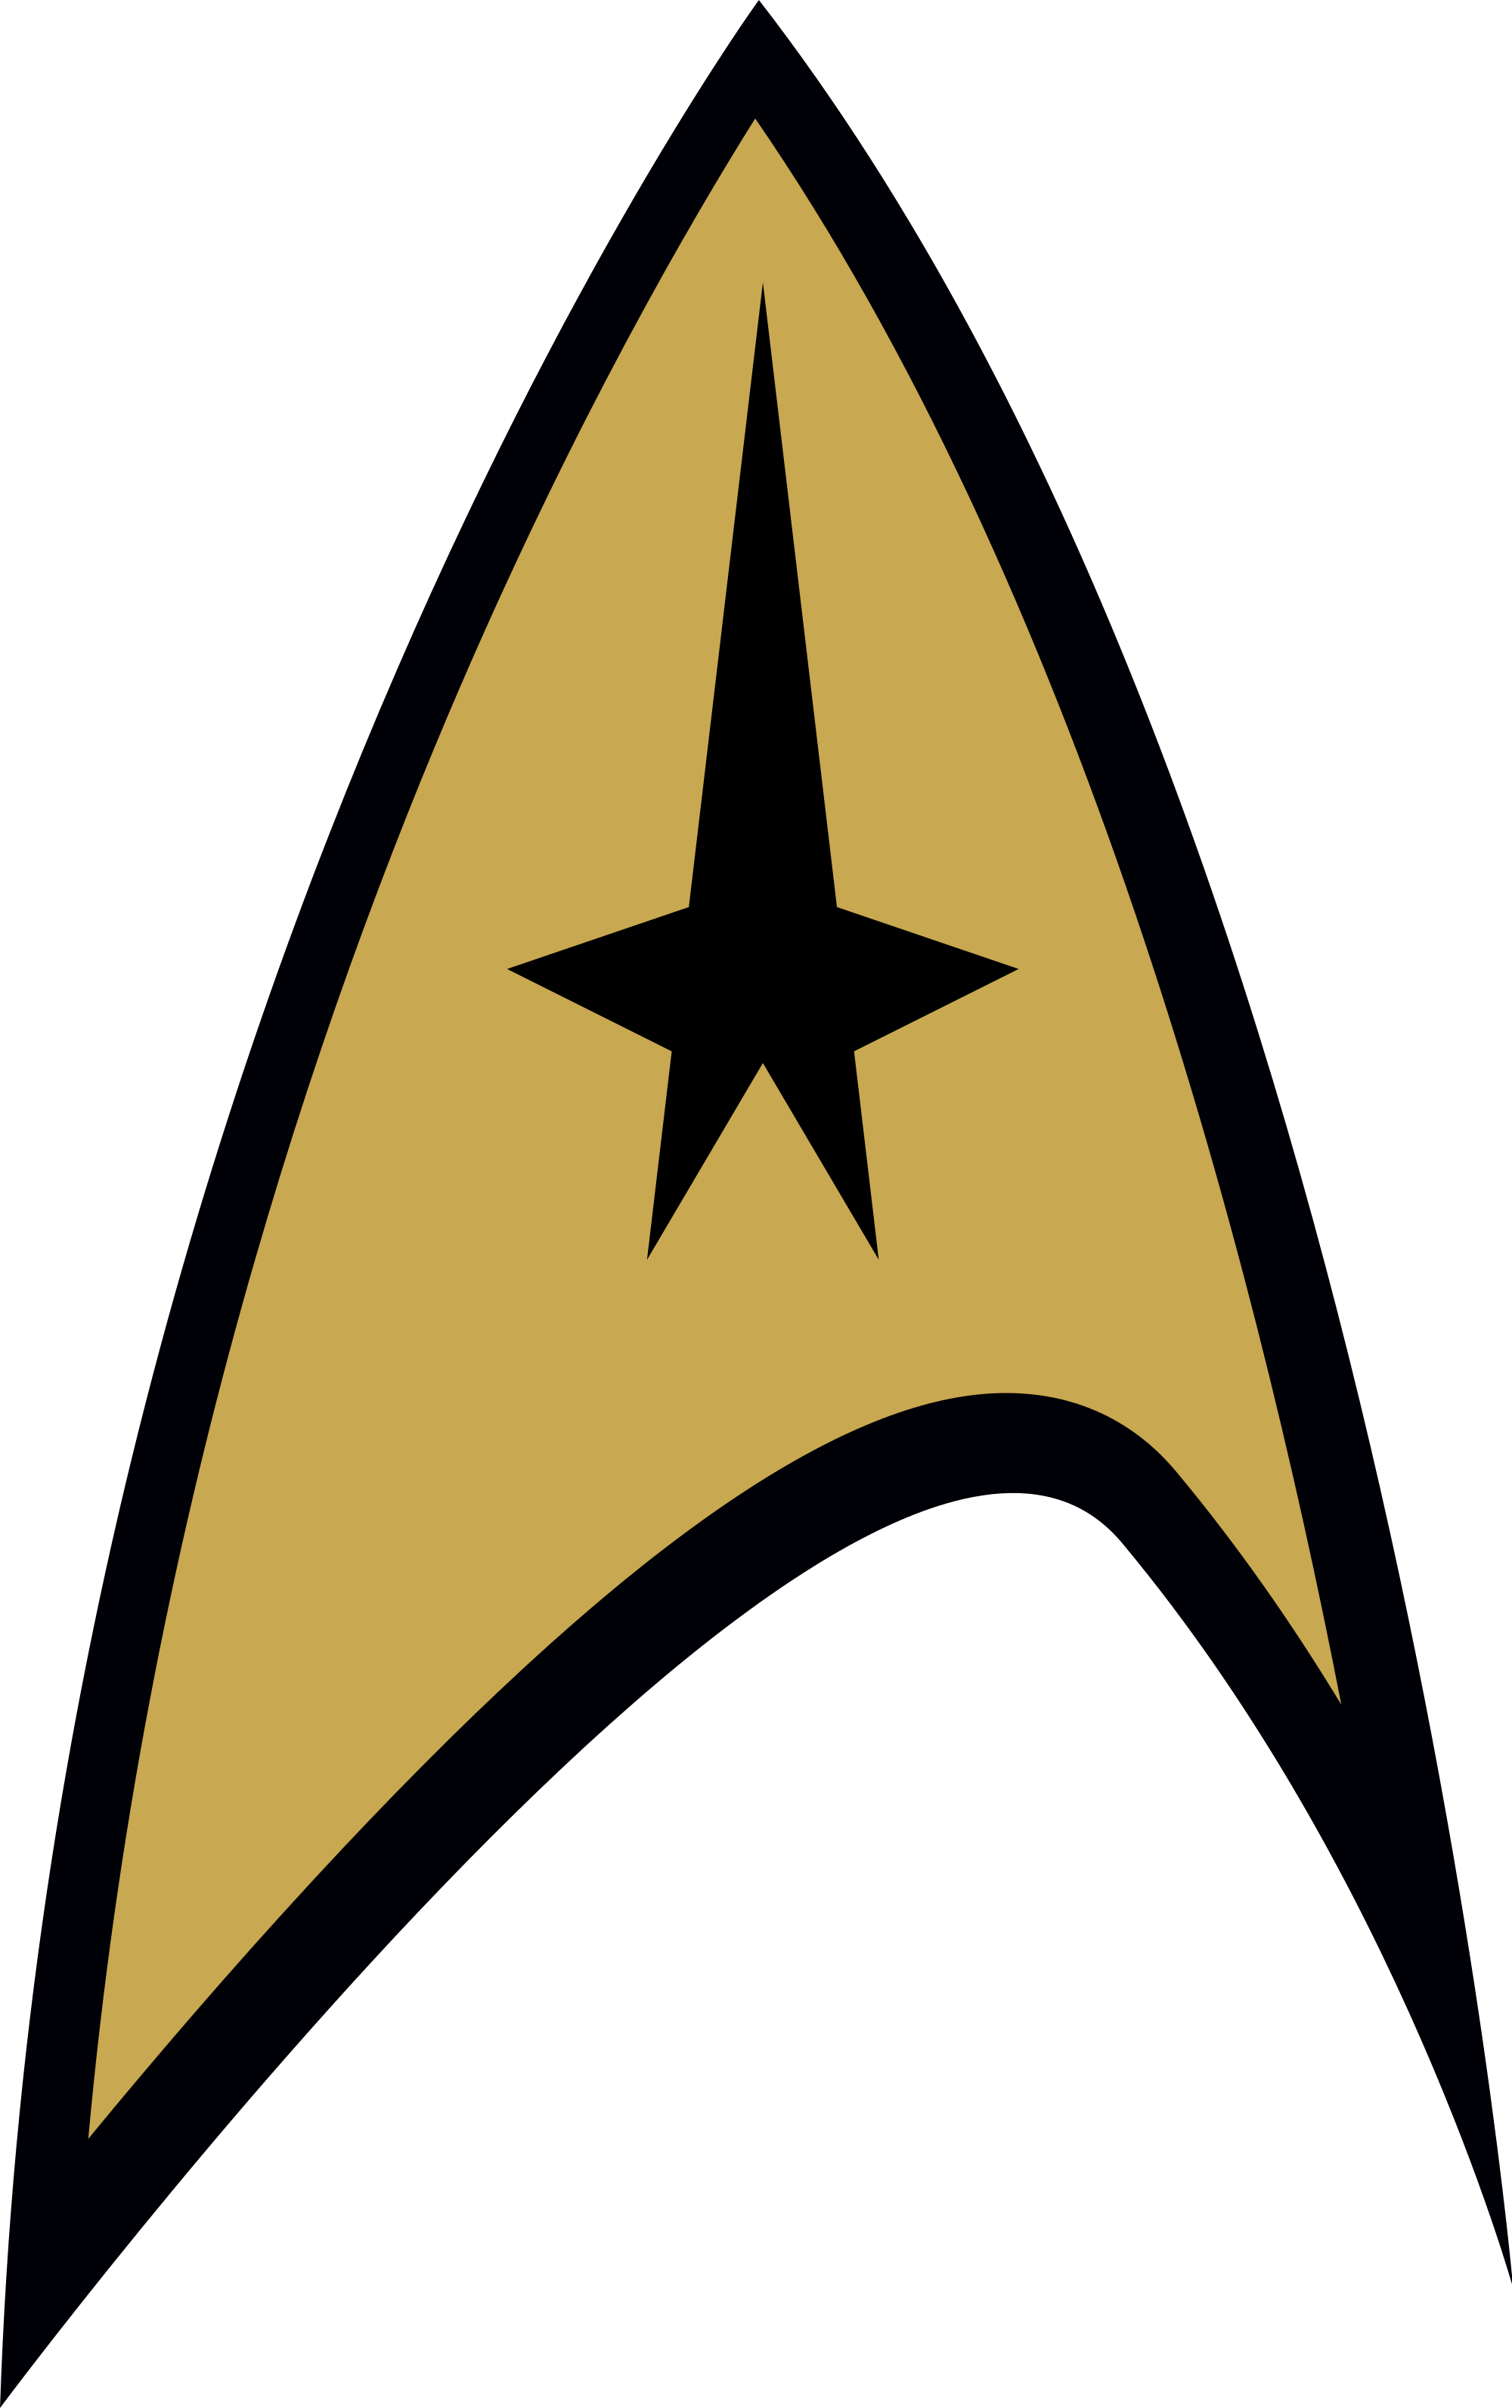 Star trek tos clipart png freeuse download File:USS Enterprise Patch.svg - Wikimedia Commons png freeuse download